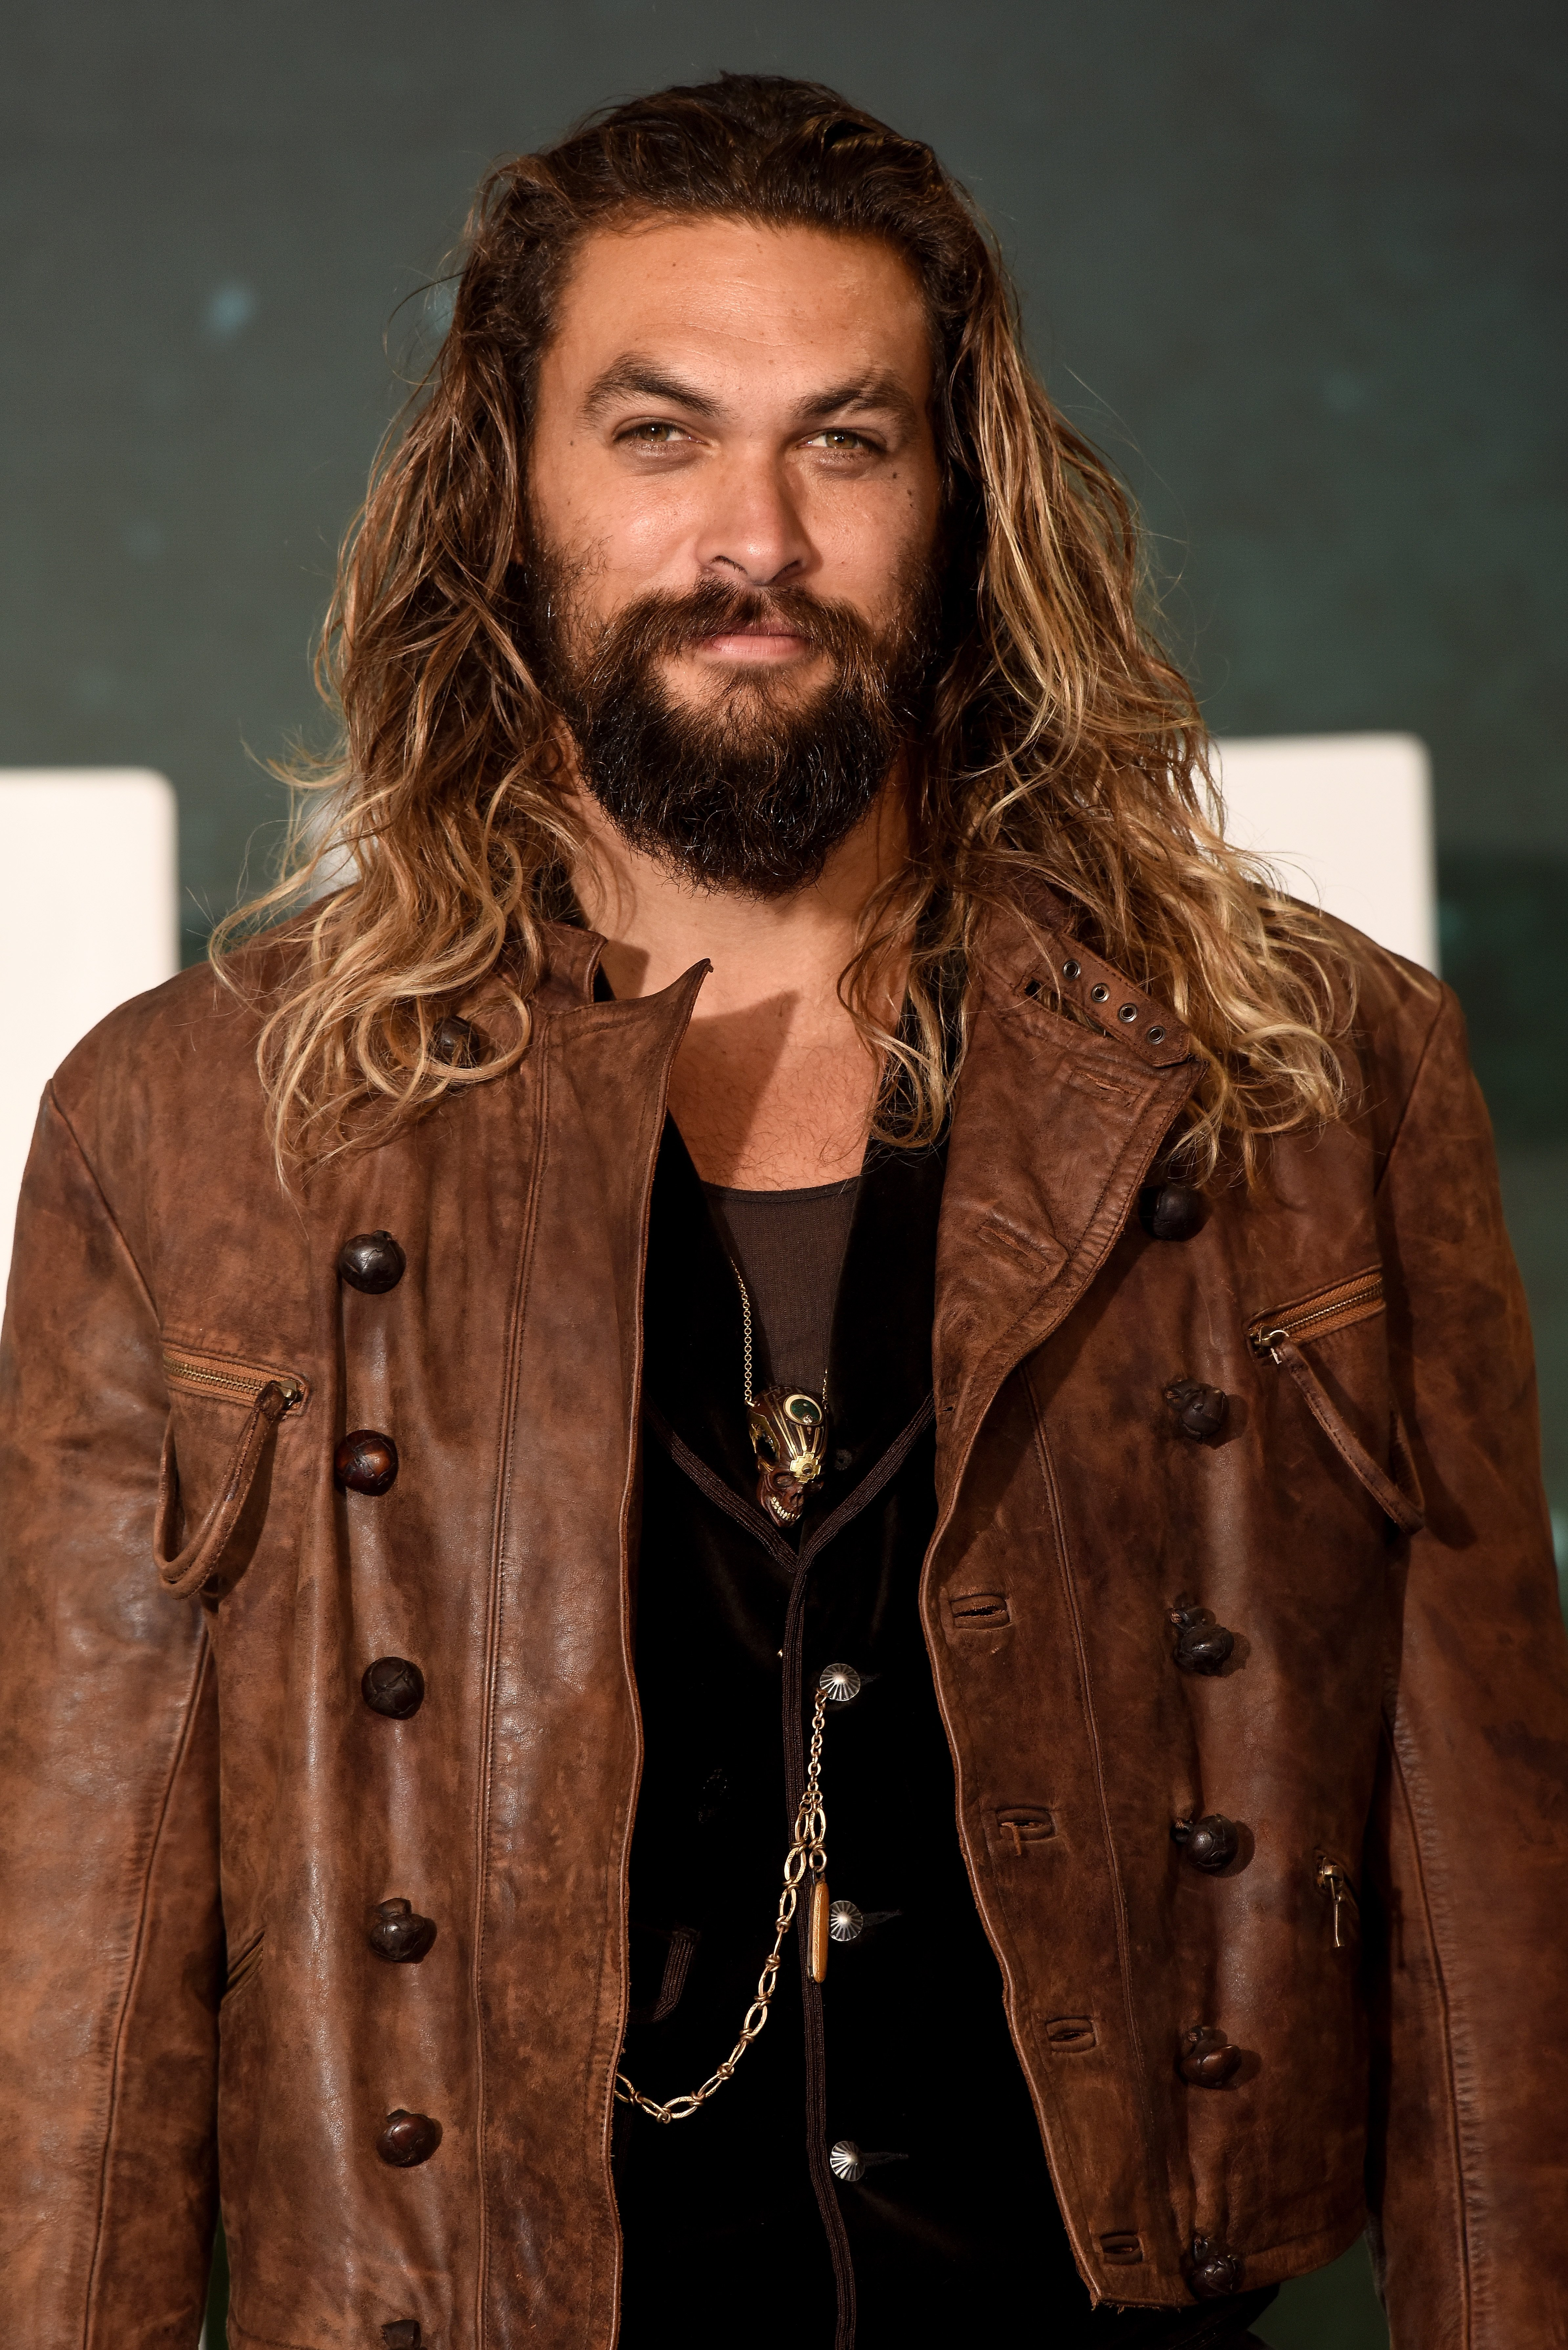 Jason Momoa attends the 'Justice League' photocall at The College on November 4, 2017 in London, England   Photo: Getty Images